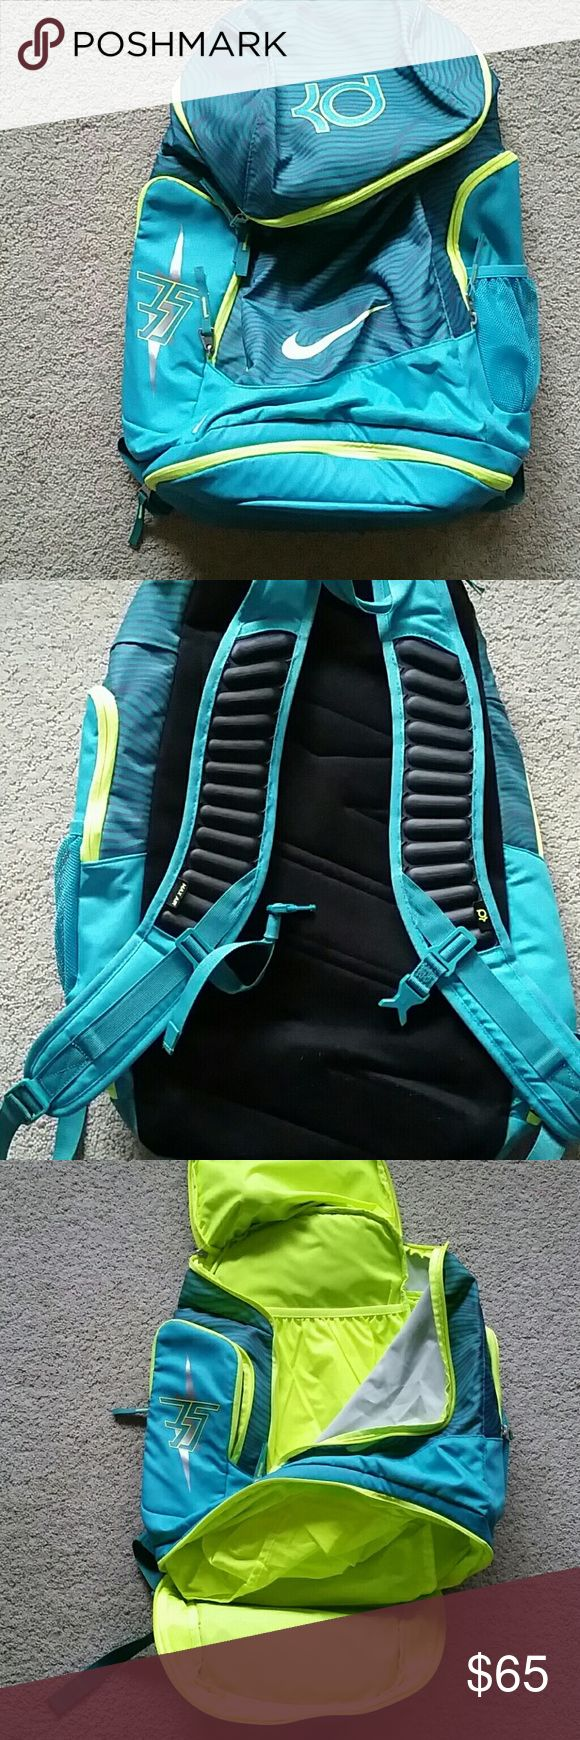 NIKE KD BACKPACK NIKE KD BACKPACK  Lightly used - still amazing condition  All zippers work Buckle across chest works Air pocket straps Teal/neon yellow  Pockets:  Large main with laptop pocket Bottom shoe Side cooler (great for water bottle)  Side (some pencil markings inside)  Top mini Nike Bags Backpacks